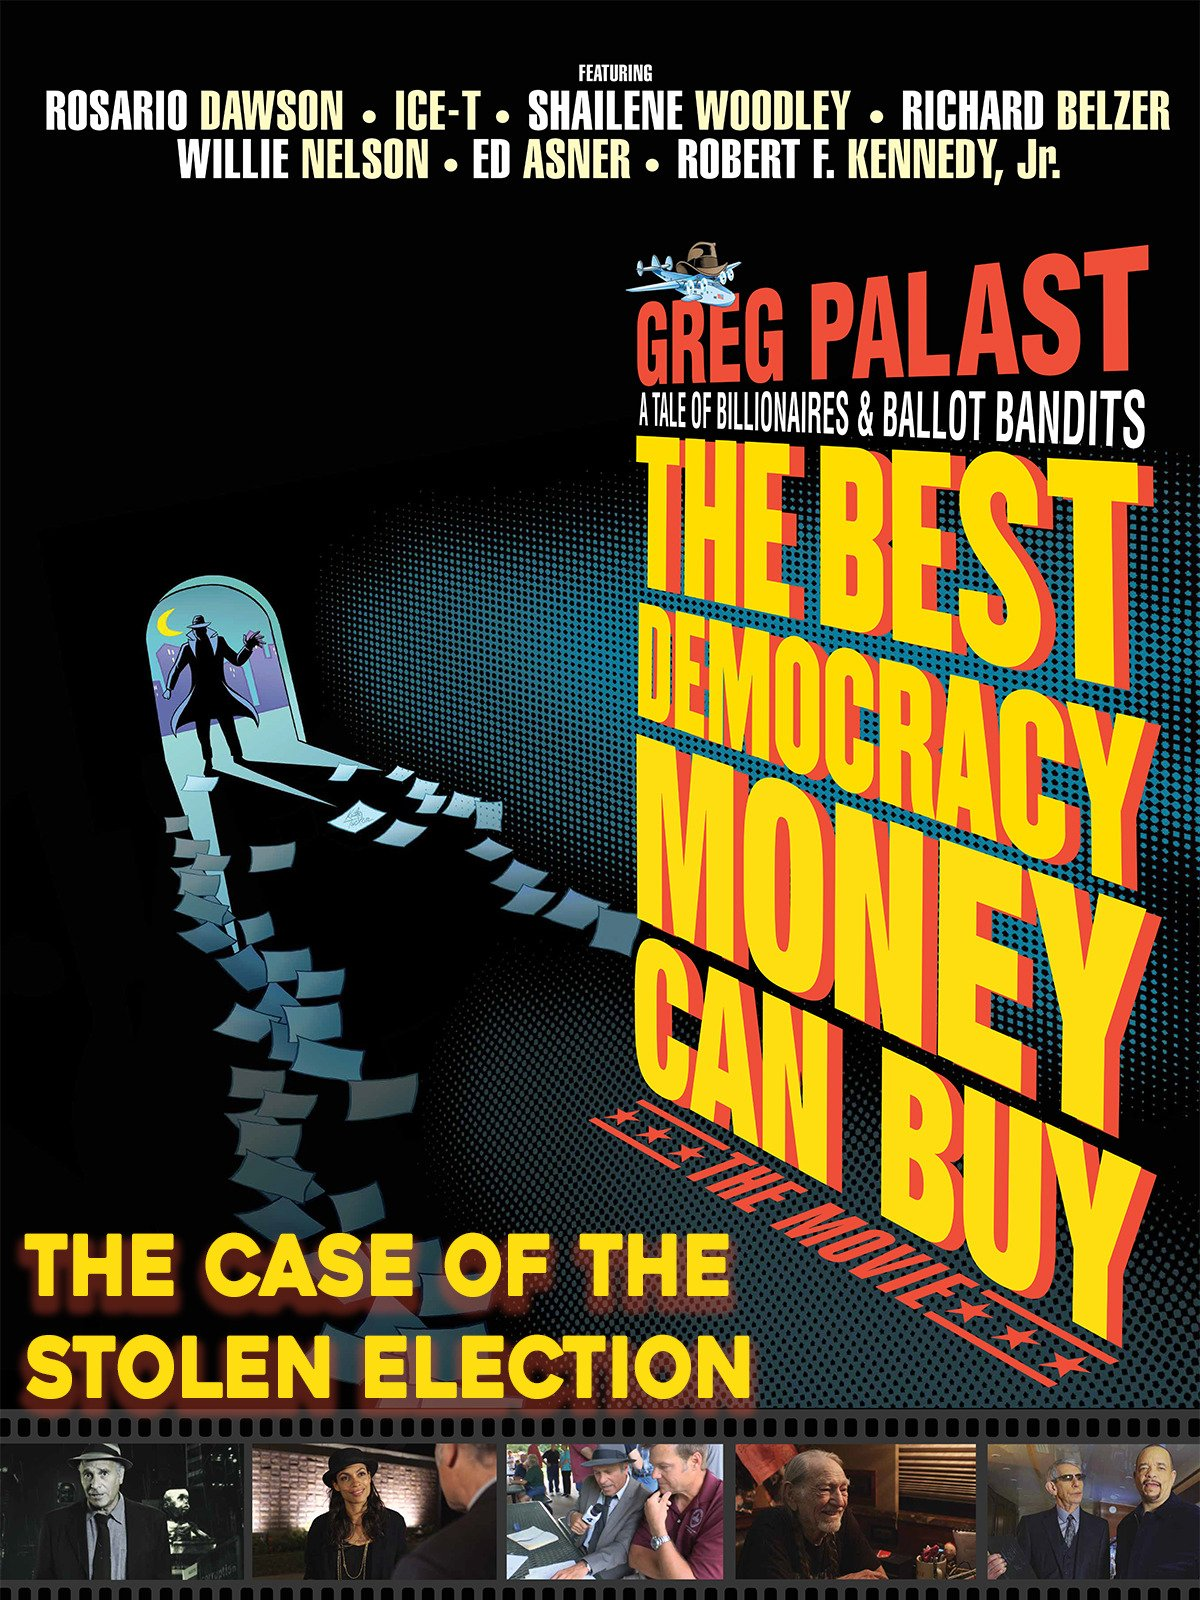 Watch The Best Democracy Money Can Buy: The Case of the Stolen Election online - Prime Video